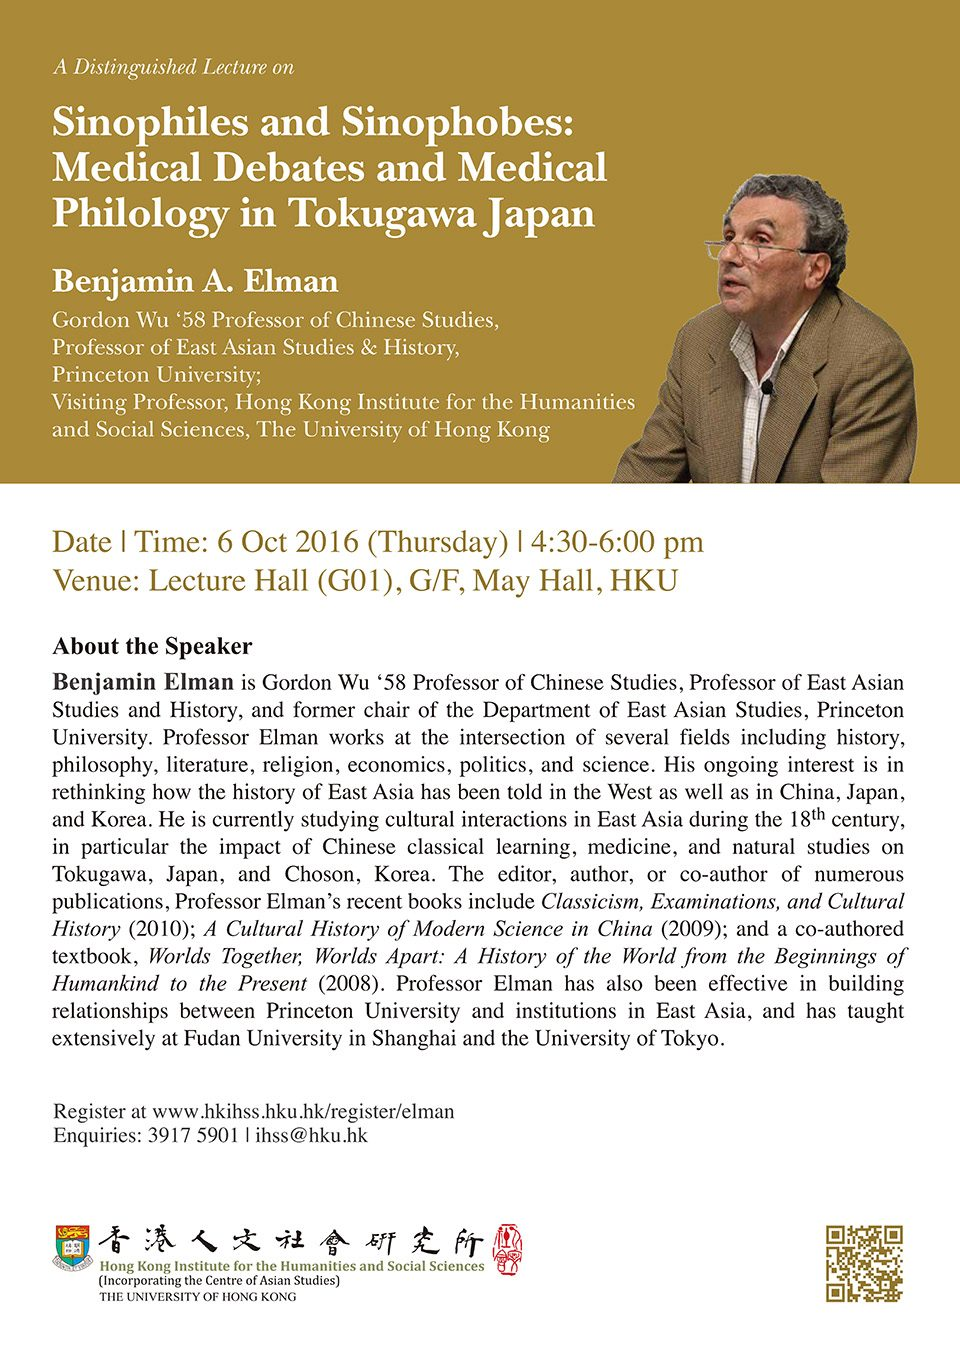 "Distinguished Lecture on ""Sinophiles and Sinophobes: Medical Debates and Medical Philology in Tokugawa Japan"" by Professor Benjamin A. Elman (October 6, 2016)"